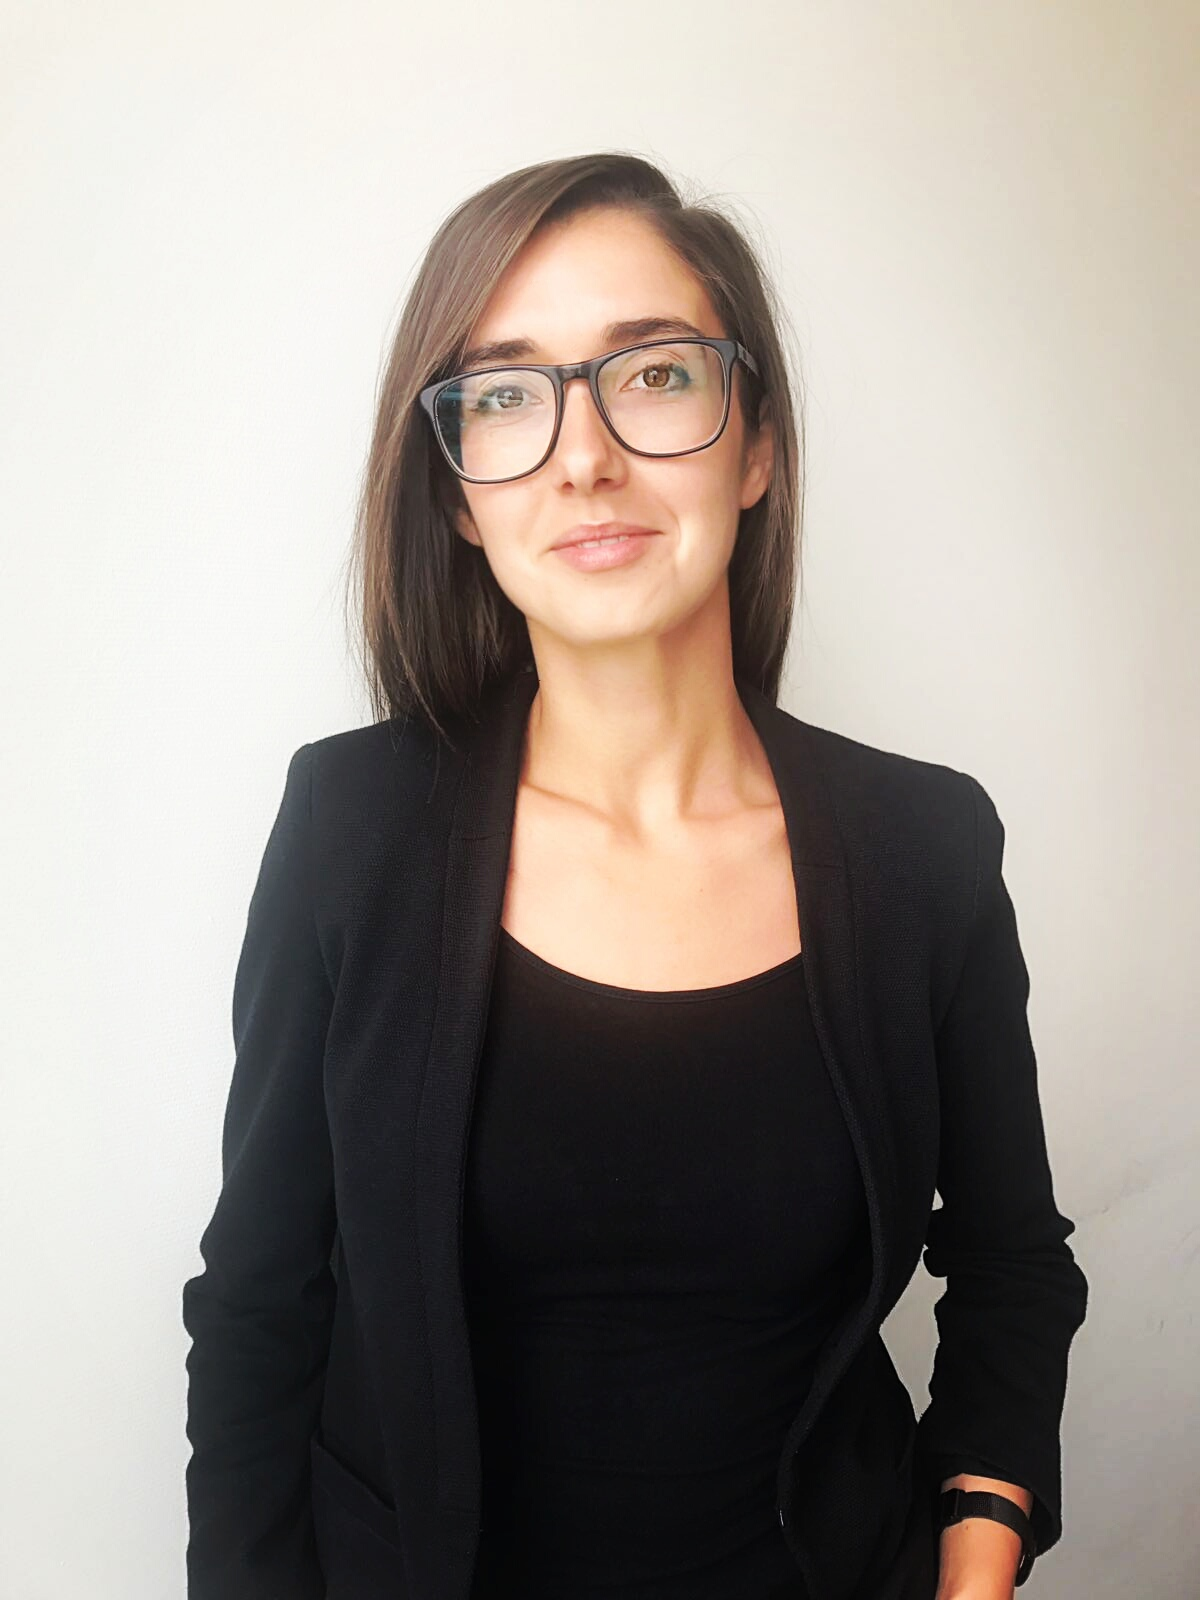 Iwona Węgrzyn on relocating from Poland to Australia; her best networking practices to set you up for success in a new city image